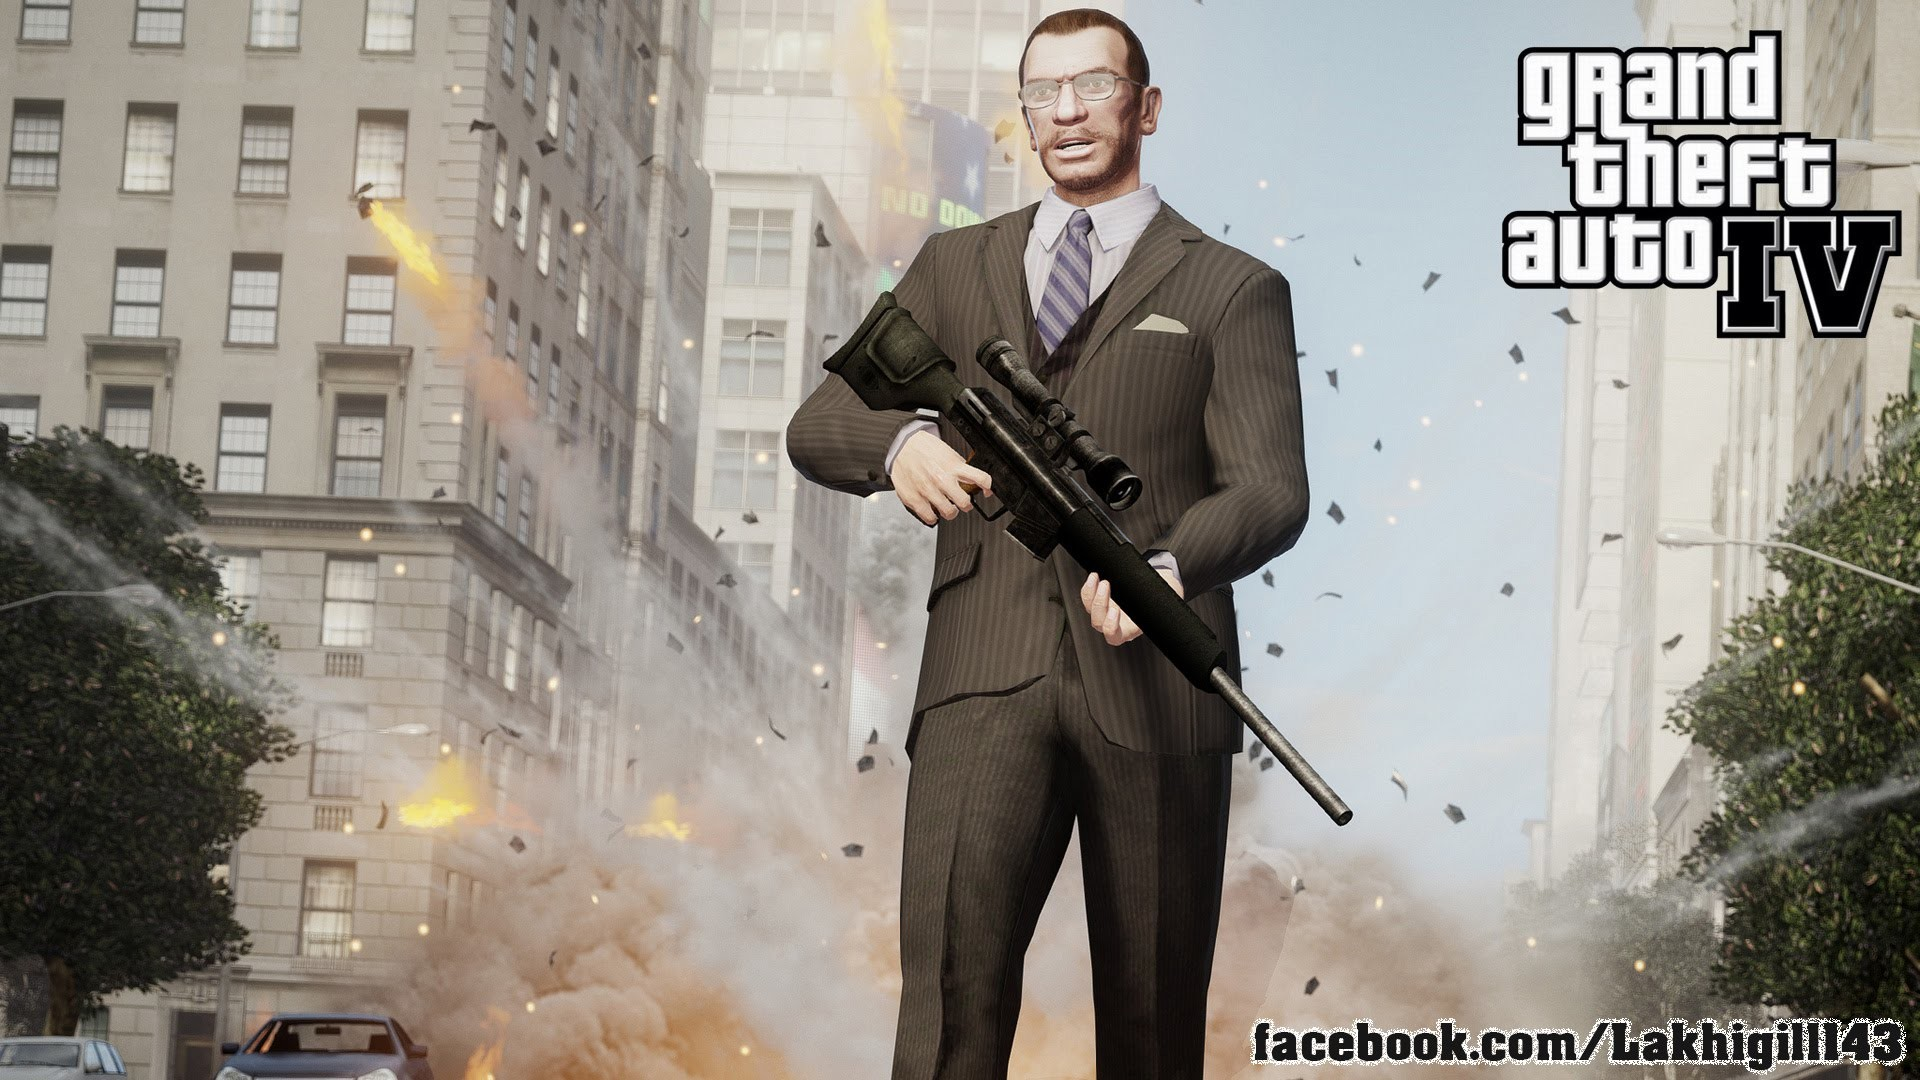 Res: 1920x1080, Grand Theft Auto IV HD Wallpapers 11 - 1920 X 1080